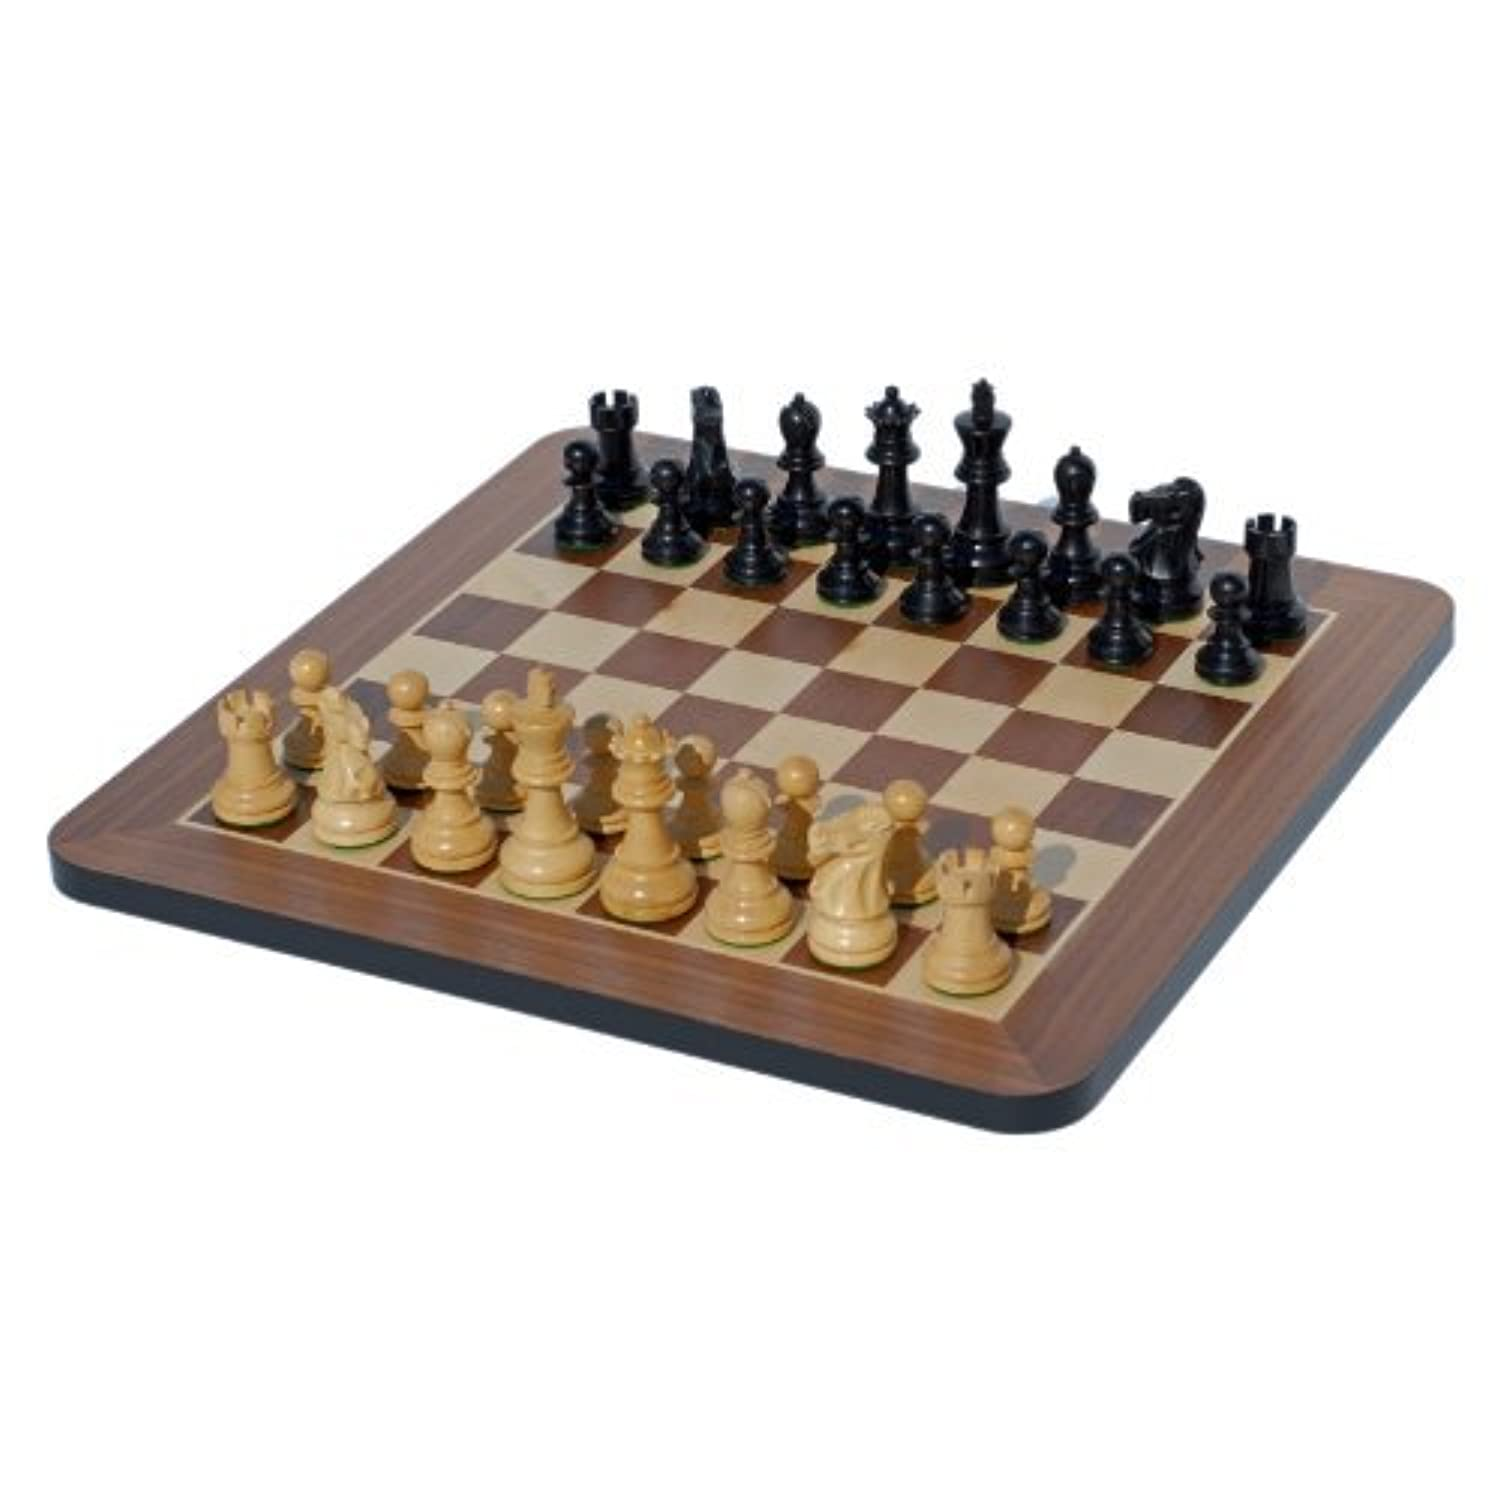 Black Stained Wood 16 inches Staunton Chess Set by WE Games